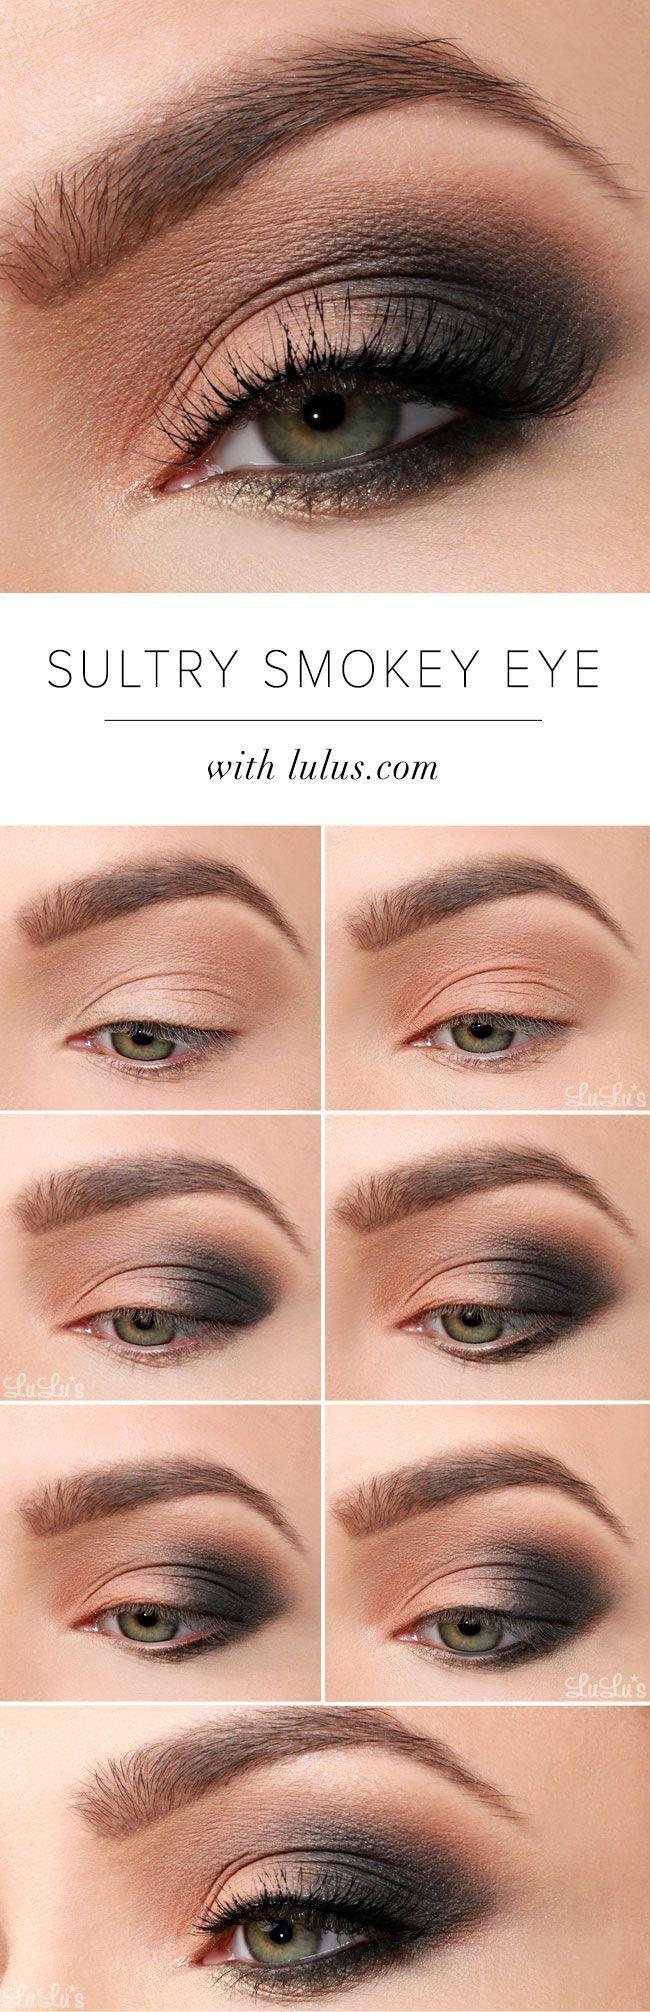 Свадьба - Lulus How-To: Sultry Smokey Eye Makeup Tutorial